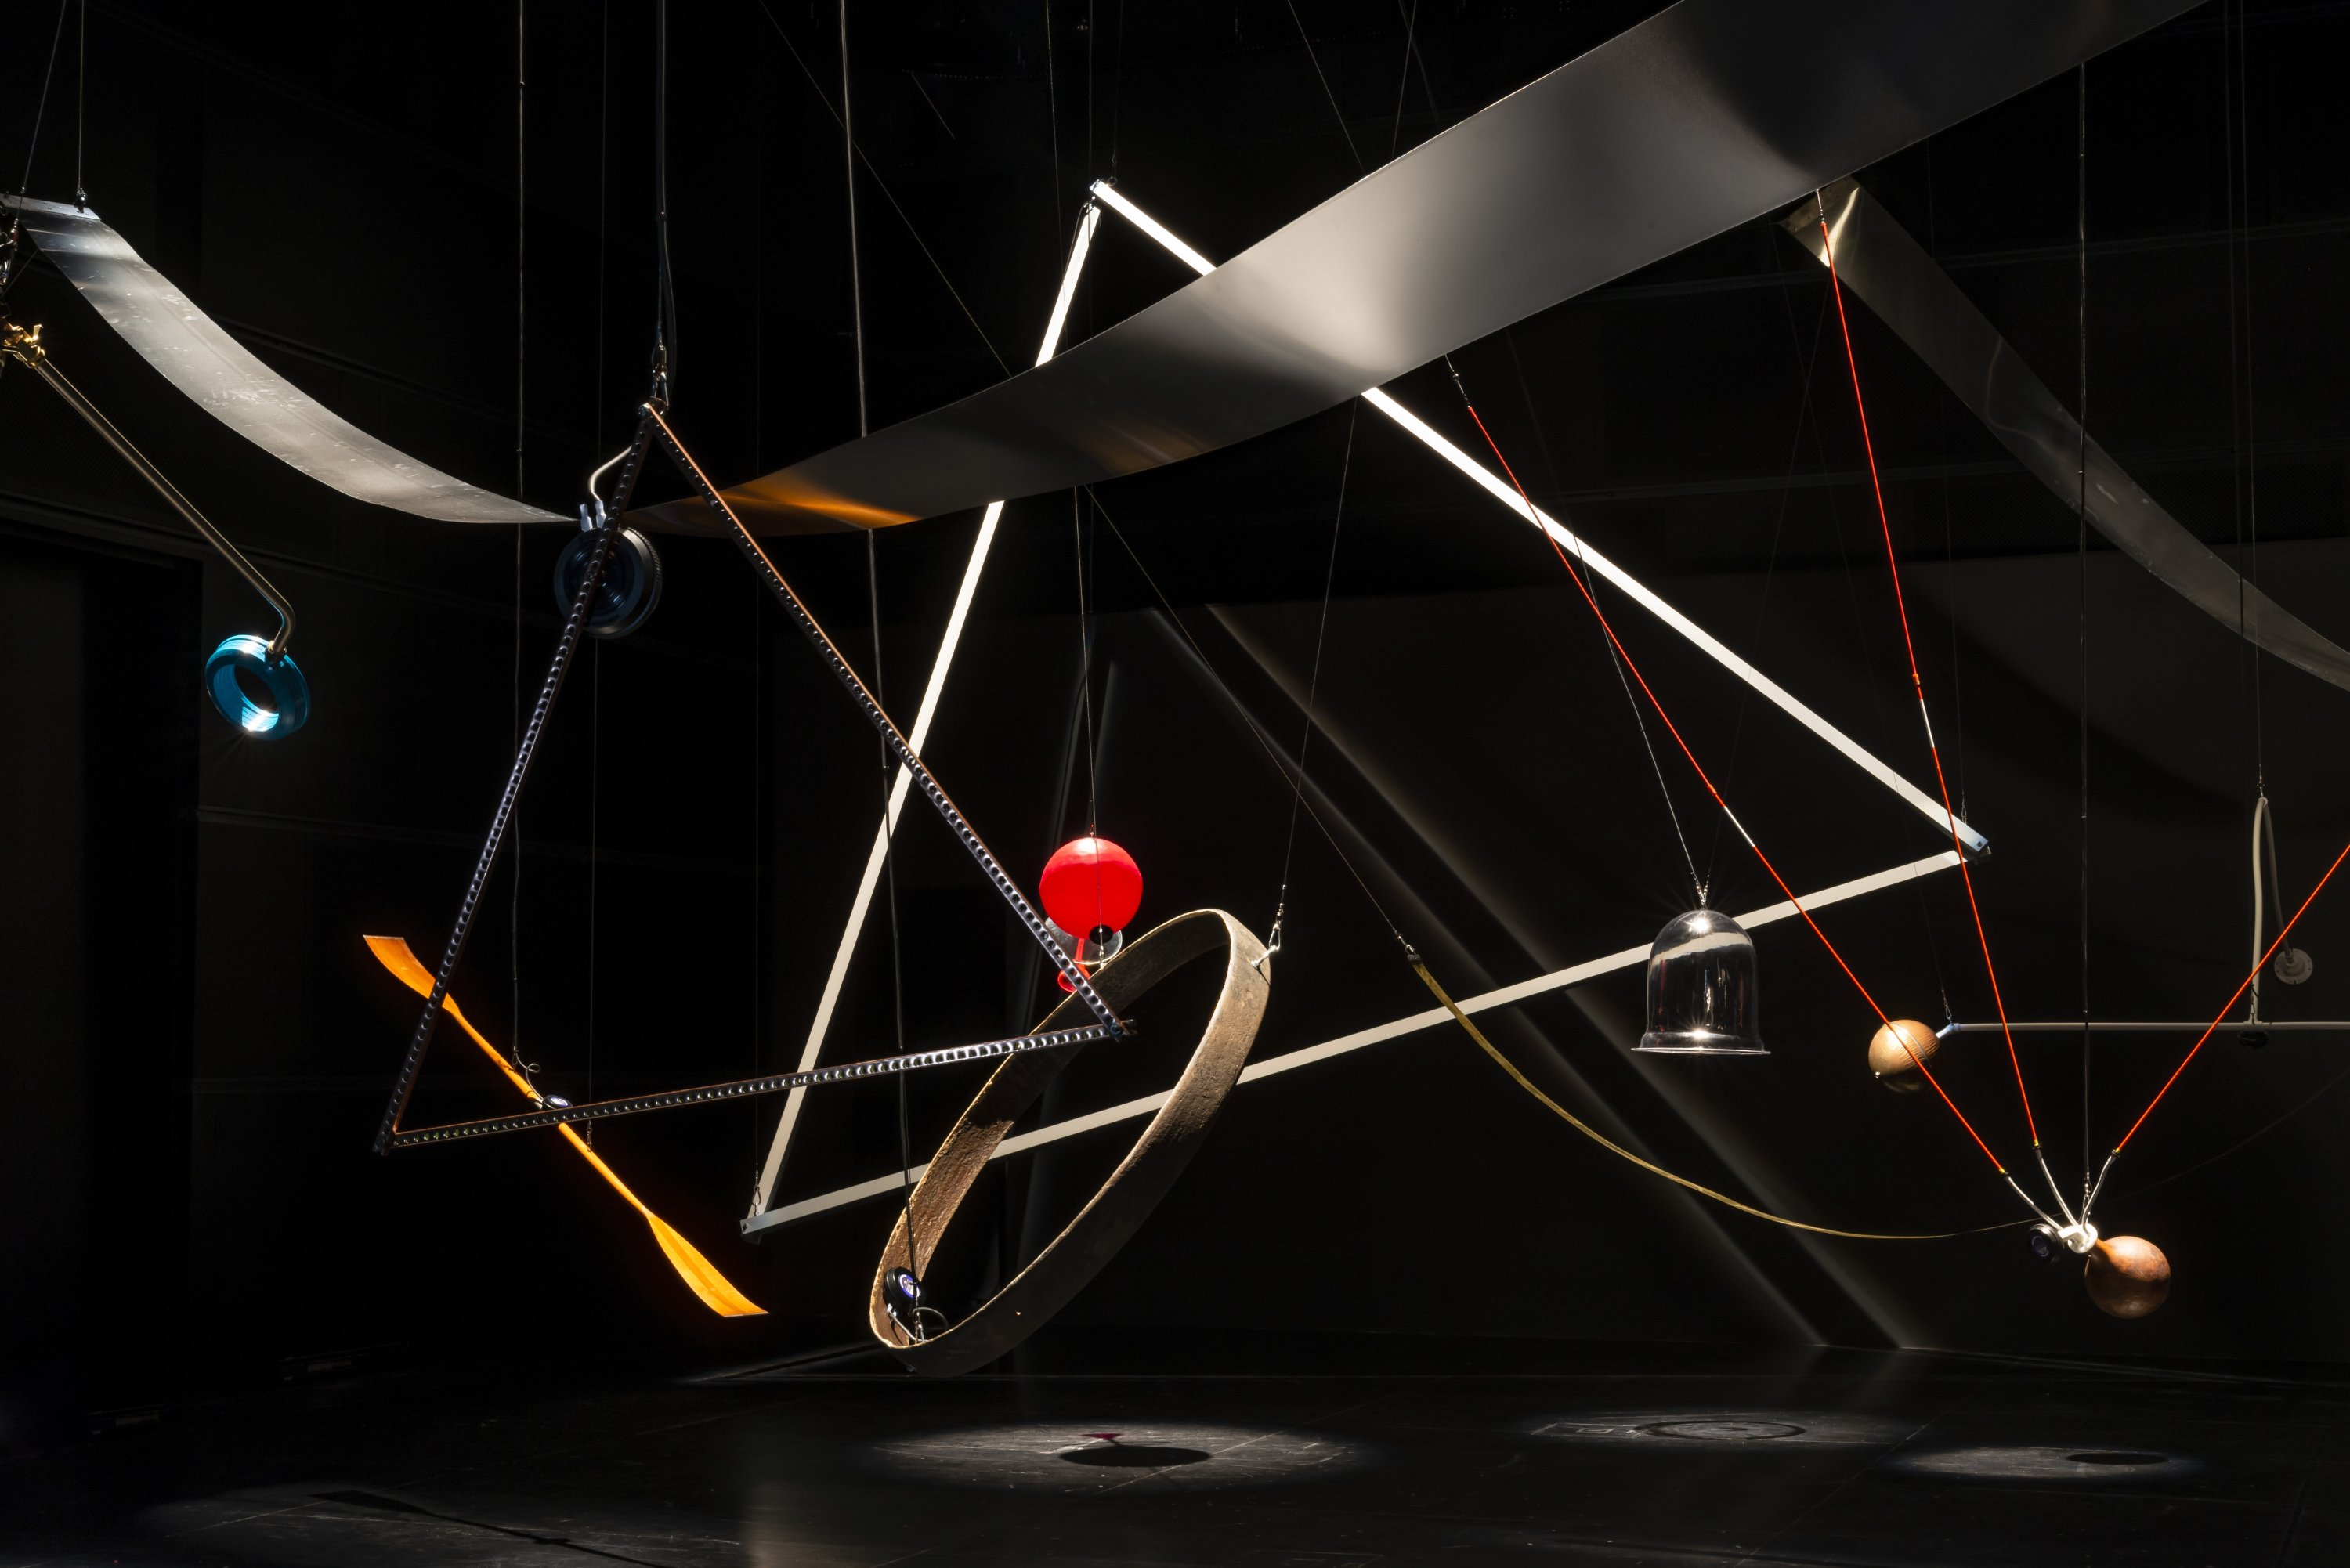 Twenty found and constructed objects hang from the tall ceiling at Arter as part of